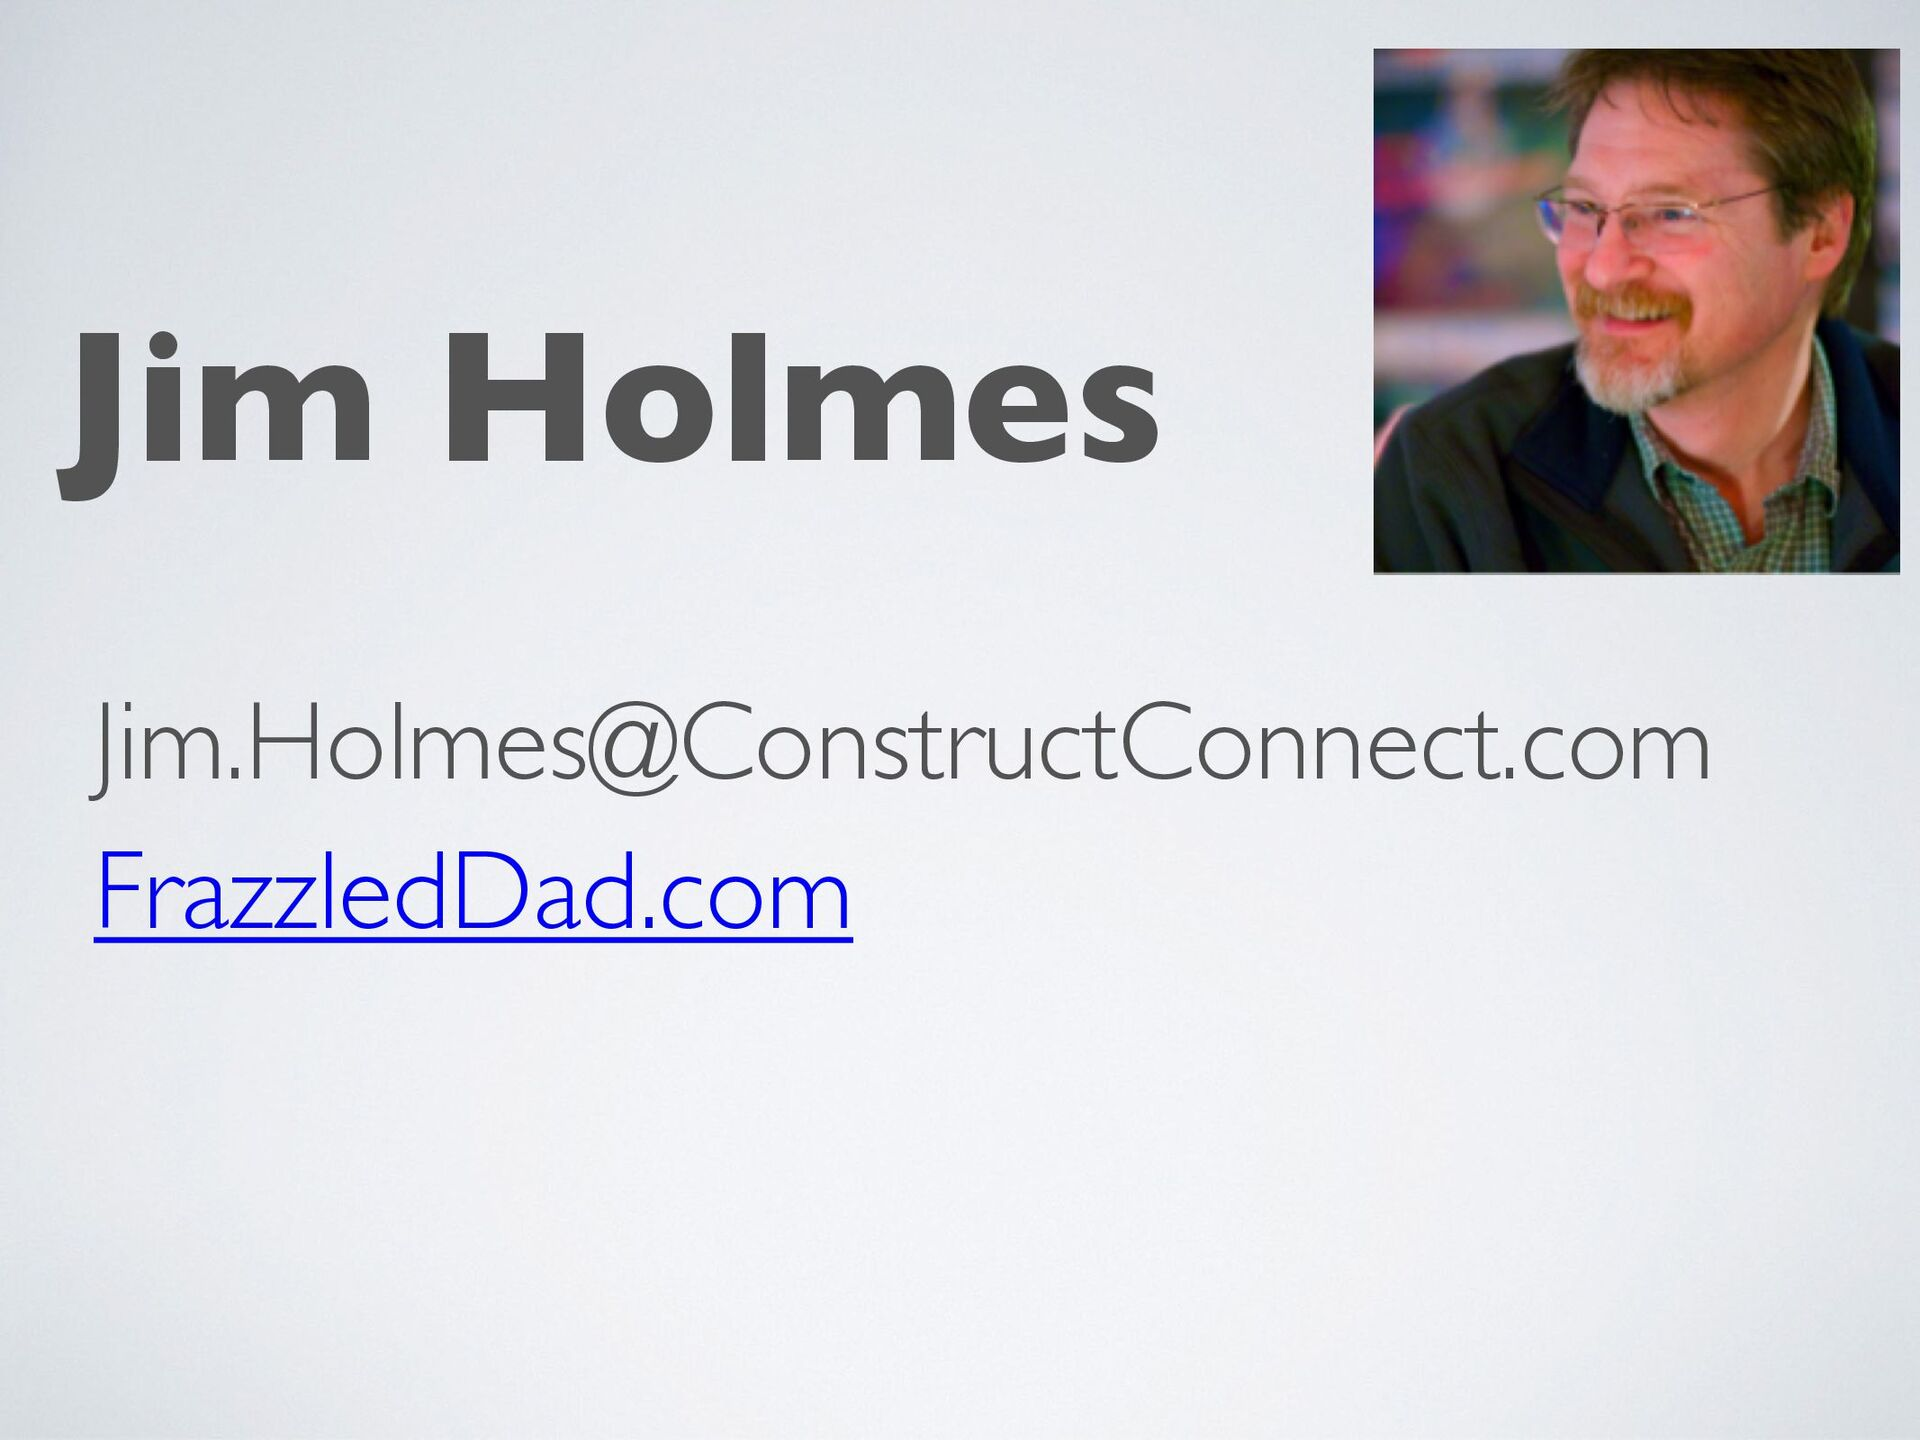 THE LEADERSHIP JOURNEY BIT.LY/LEADERSHIPJOURNEY